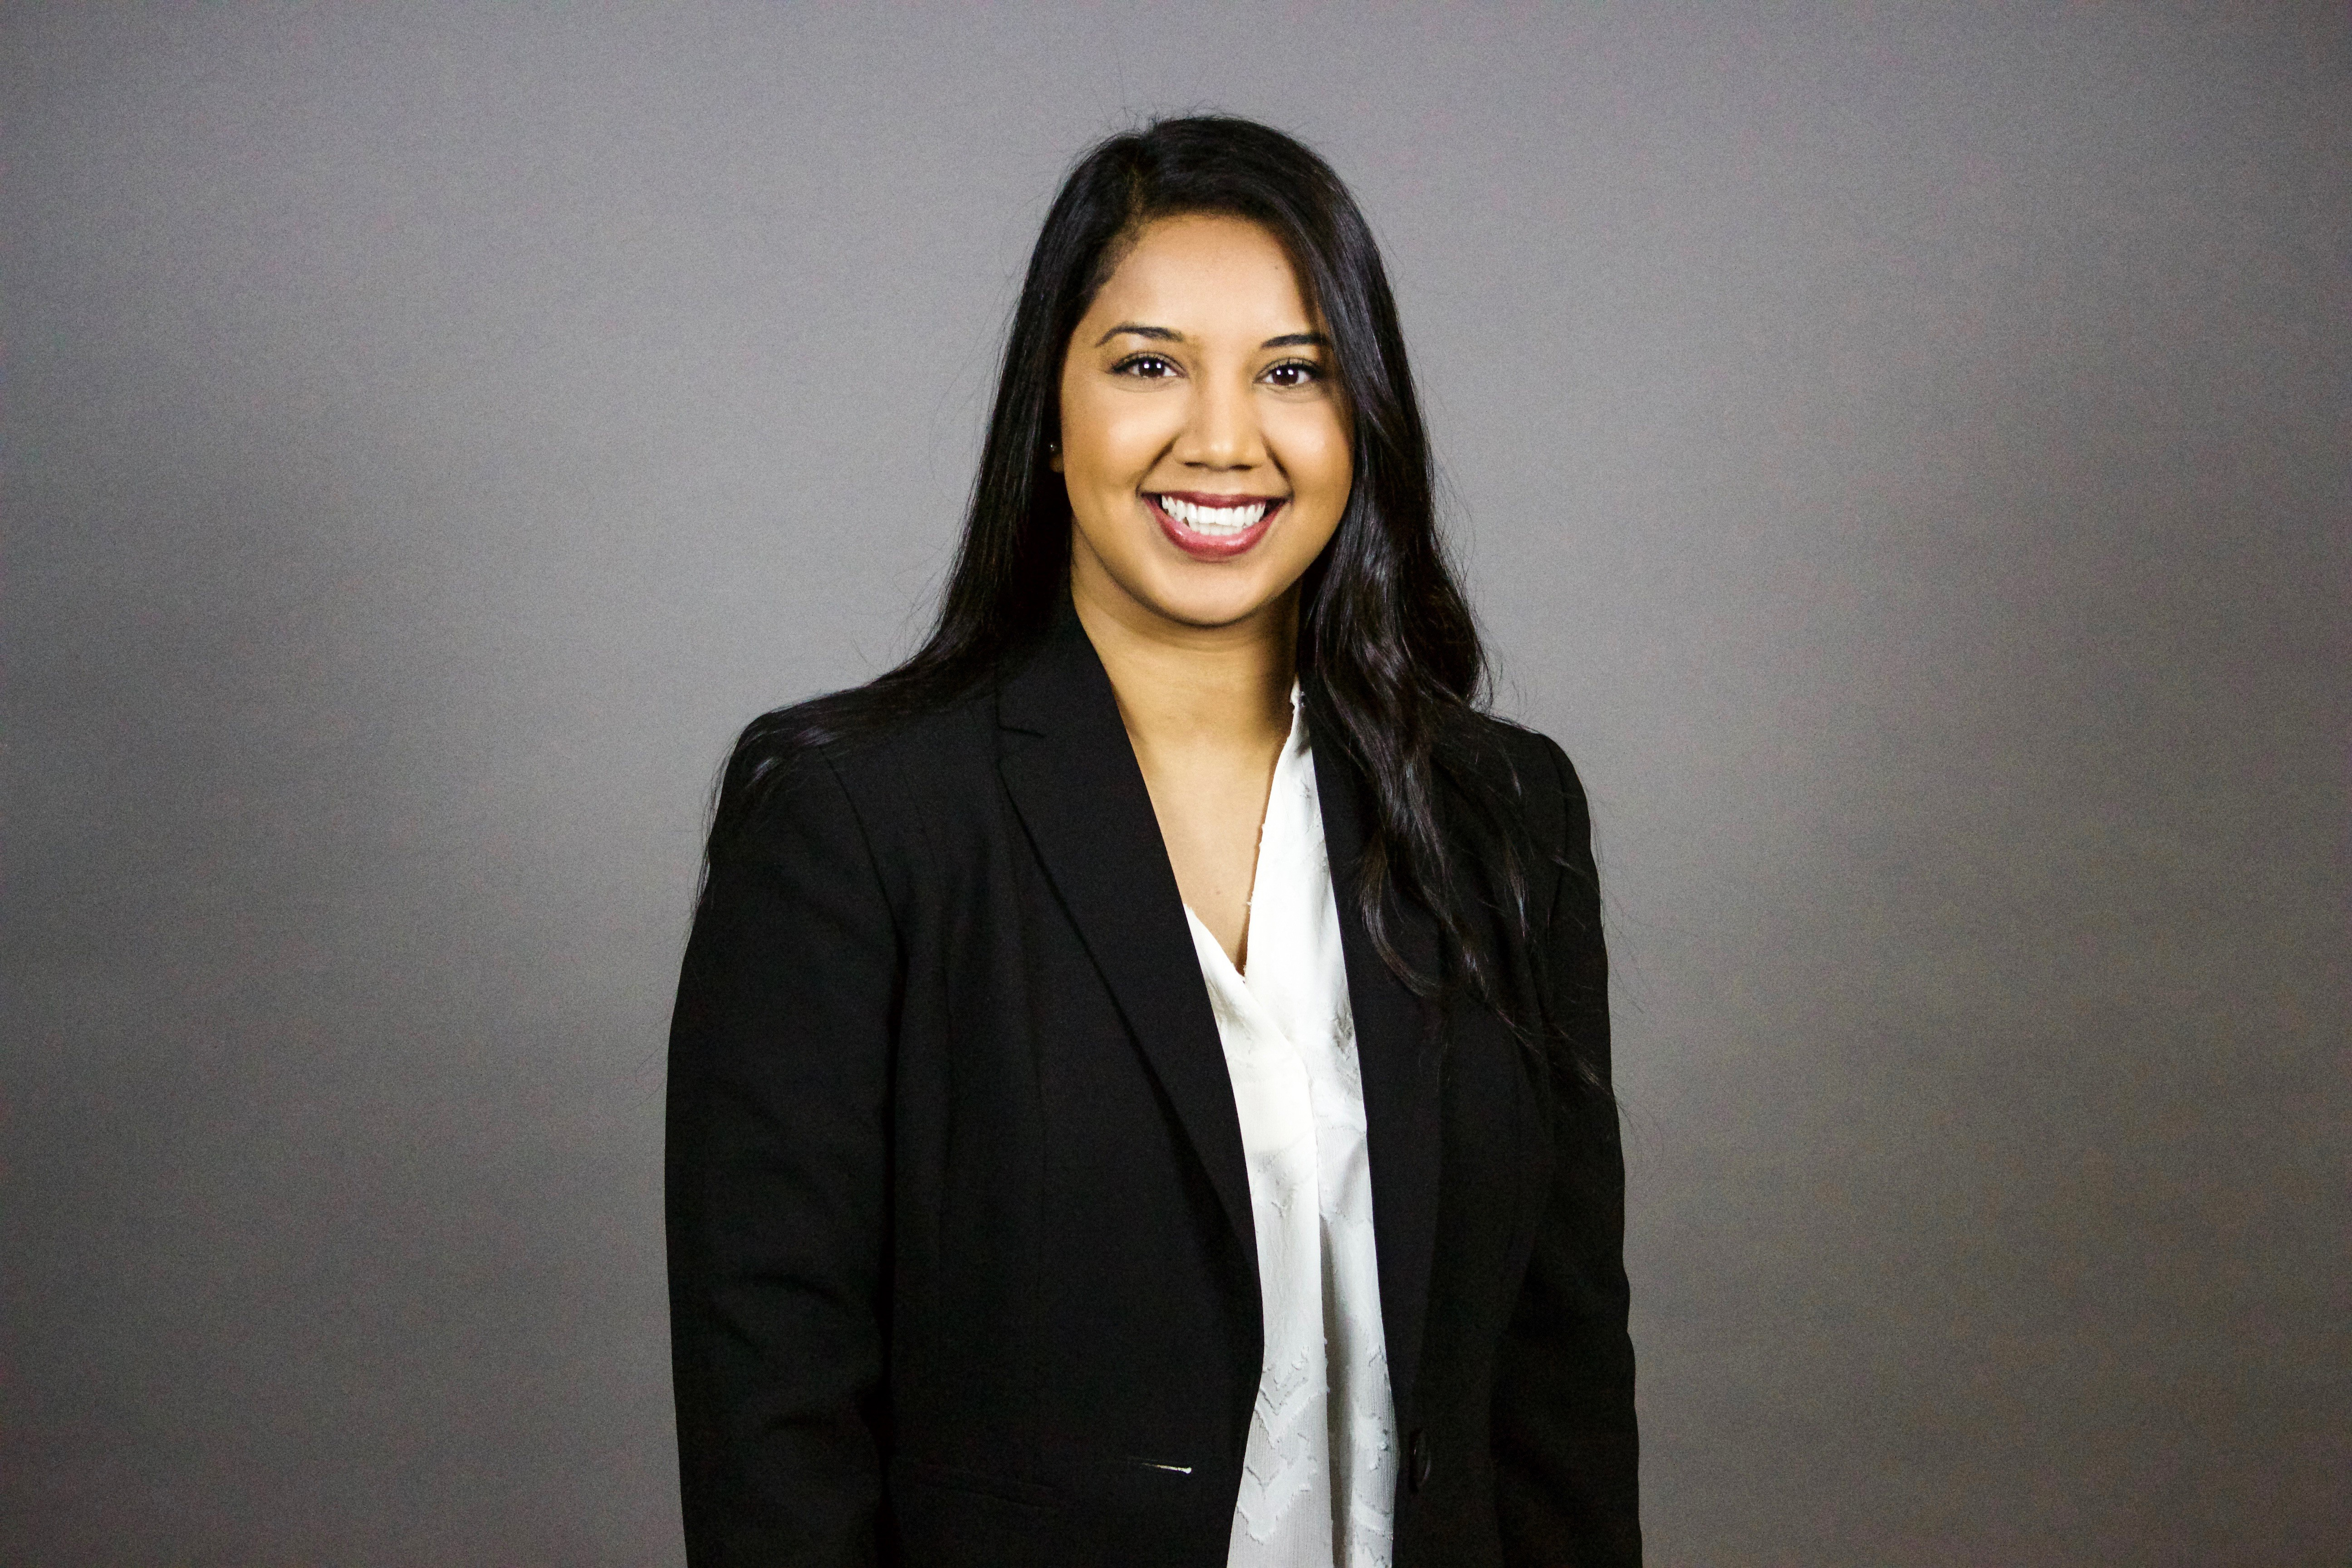 Fariha Hassan, Project Manager at AdEdge